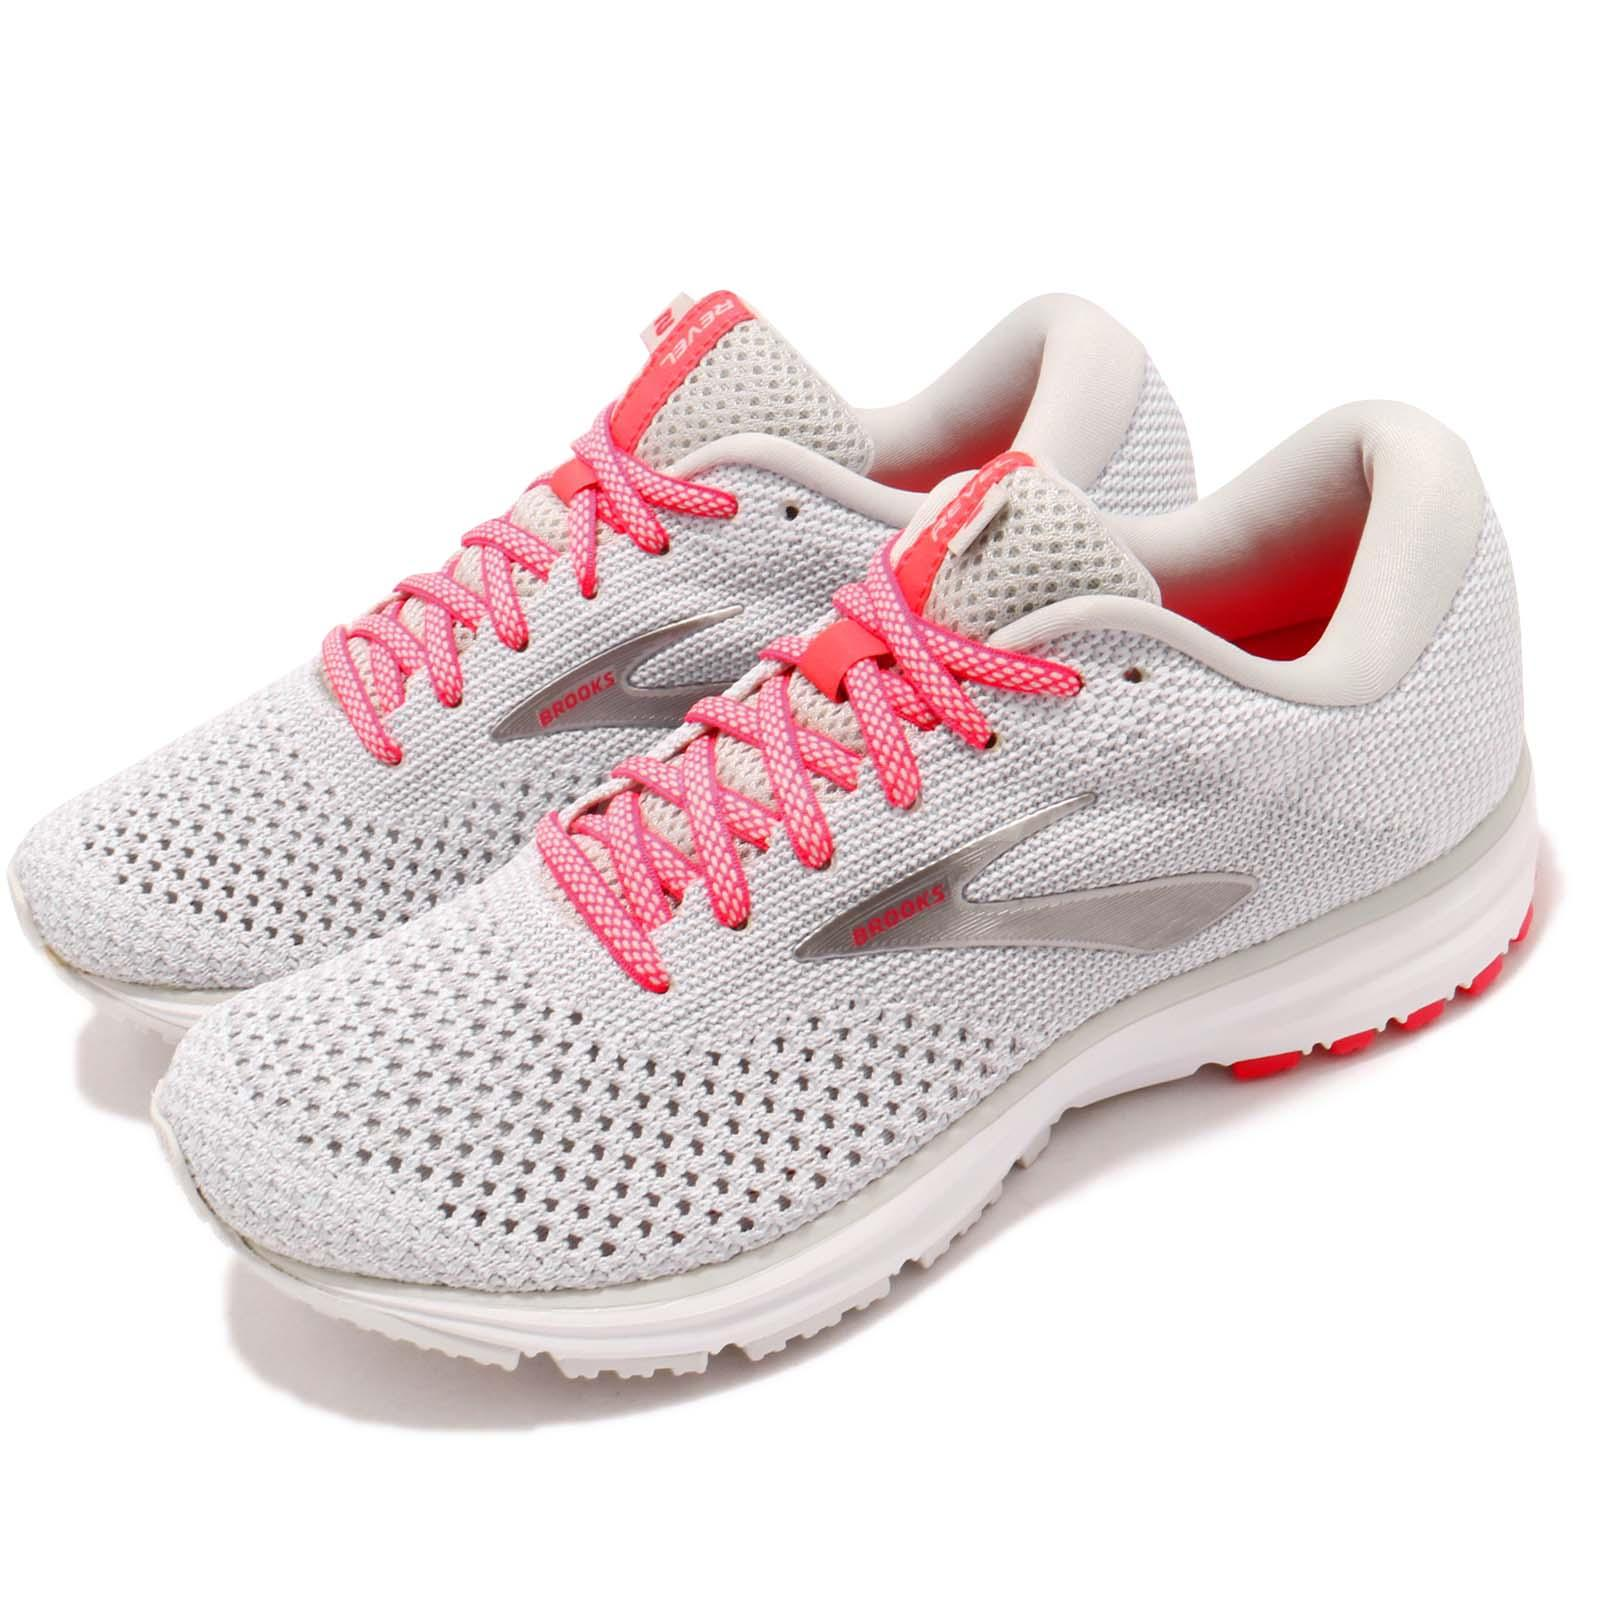 fa8be209de3 Details about Brooks Revel 2 Grey White Pink Women Running Training Shoes  Sneakers 120281 1B